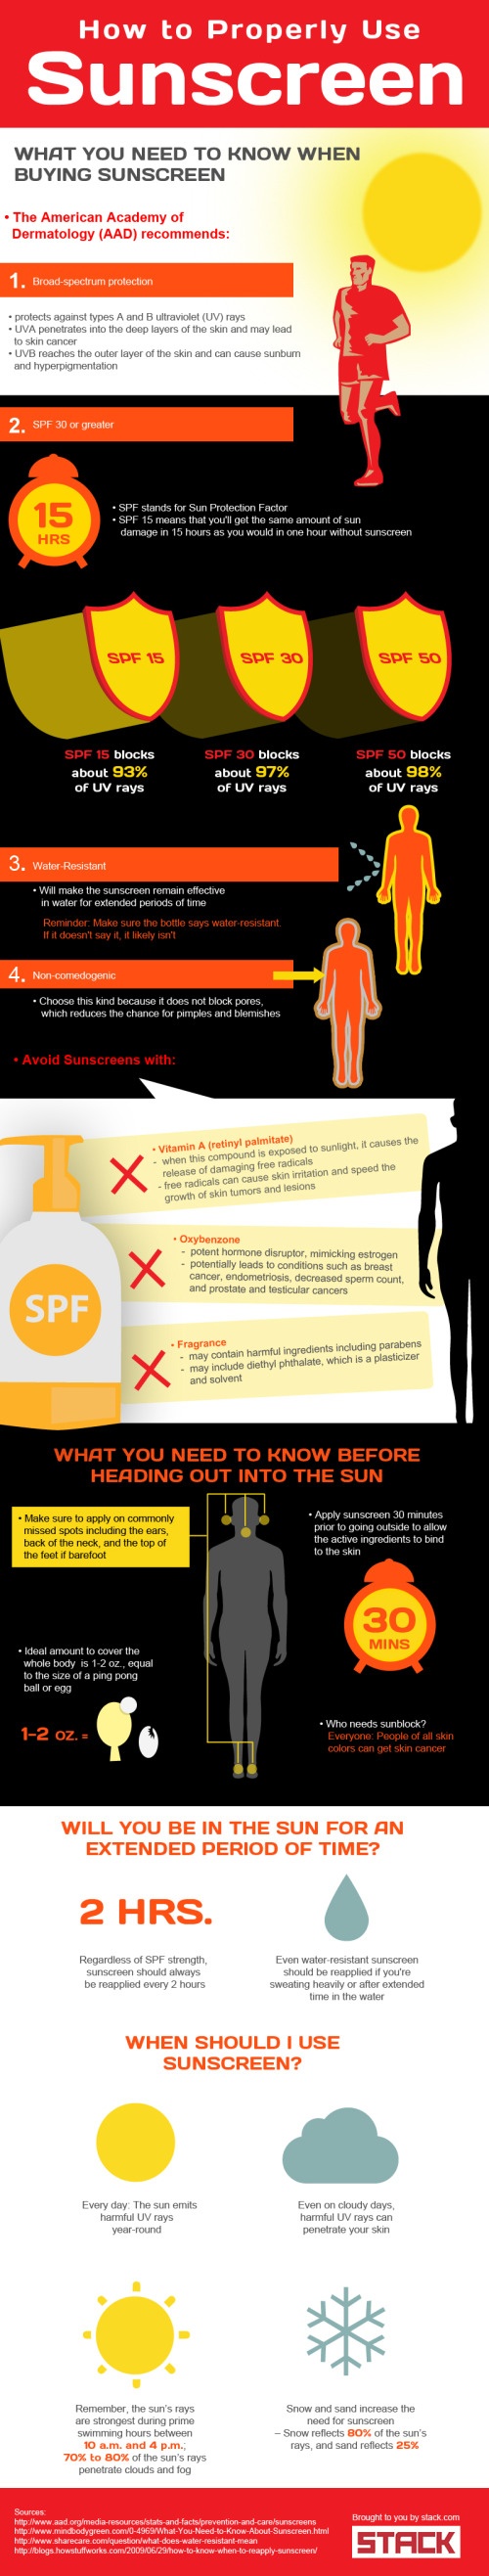 STACK How To Use Sunscreen Properly infographic